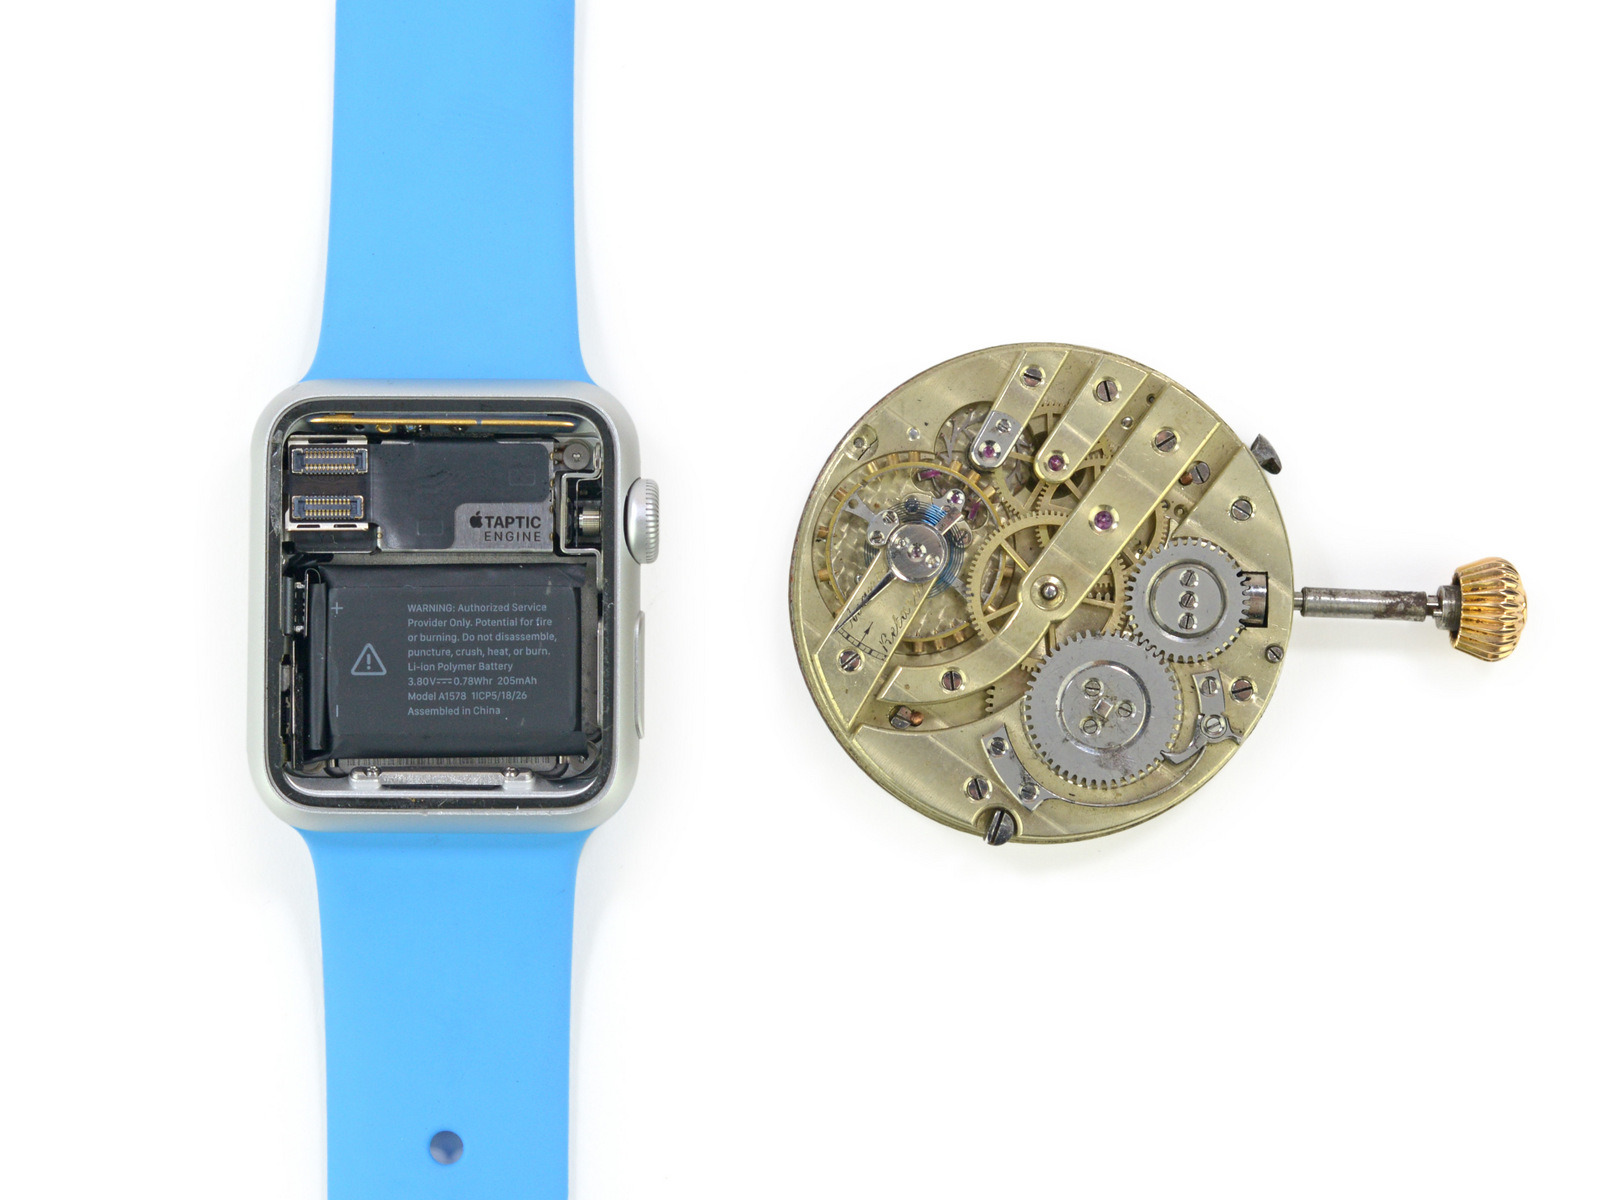 The Apple Watch Gets Ifixit Treatment Vr World No Disassemble Short Circuit See More 3 Theguardian Com